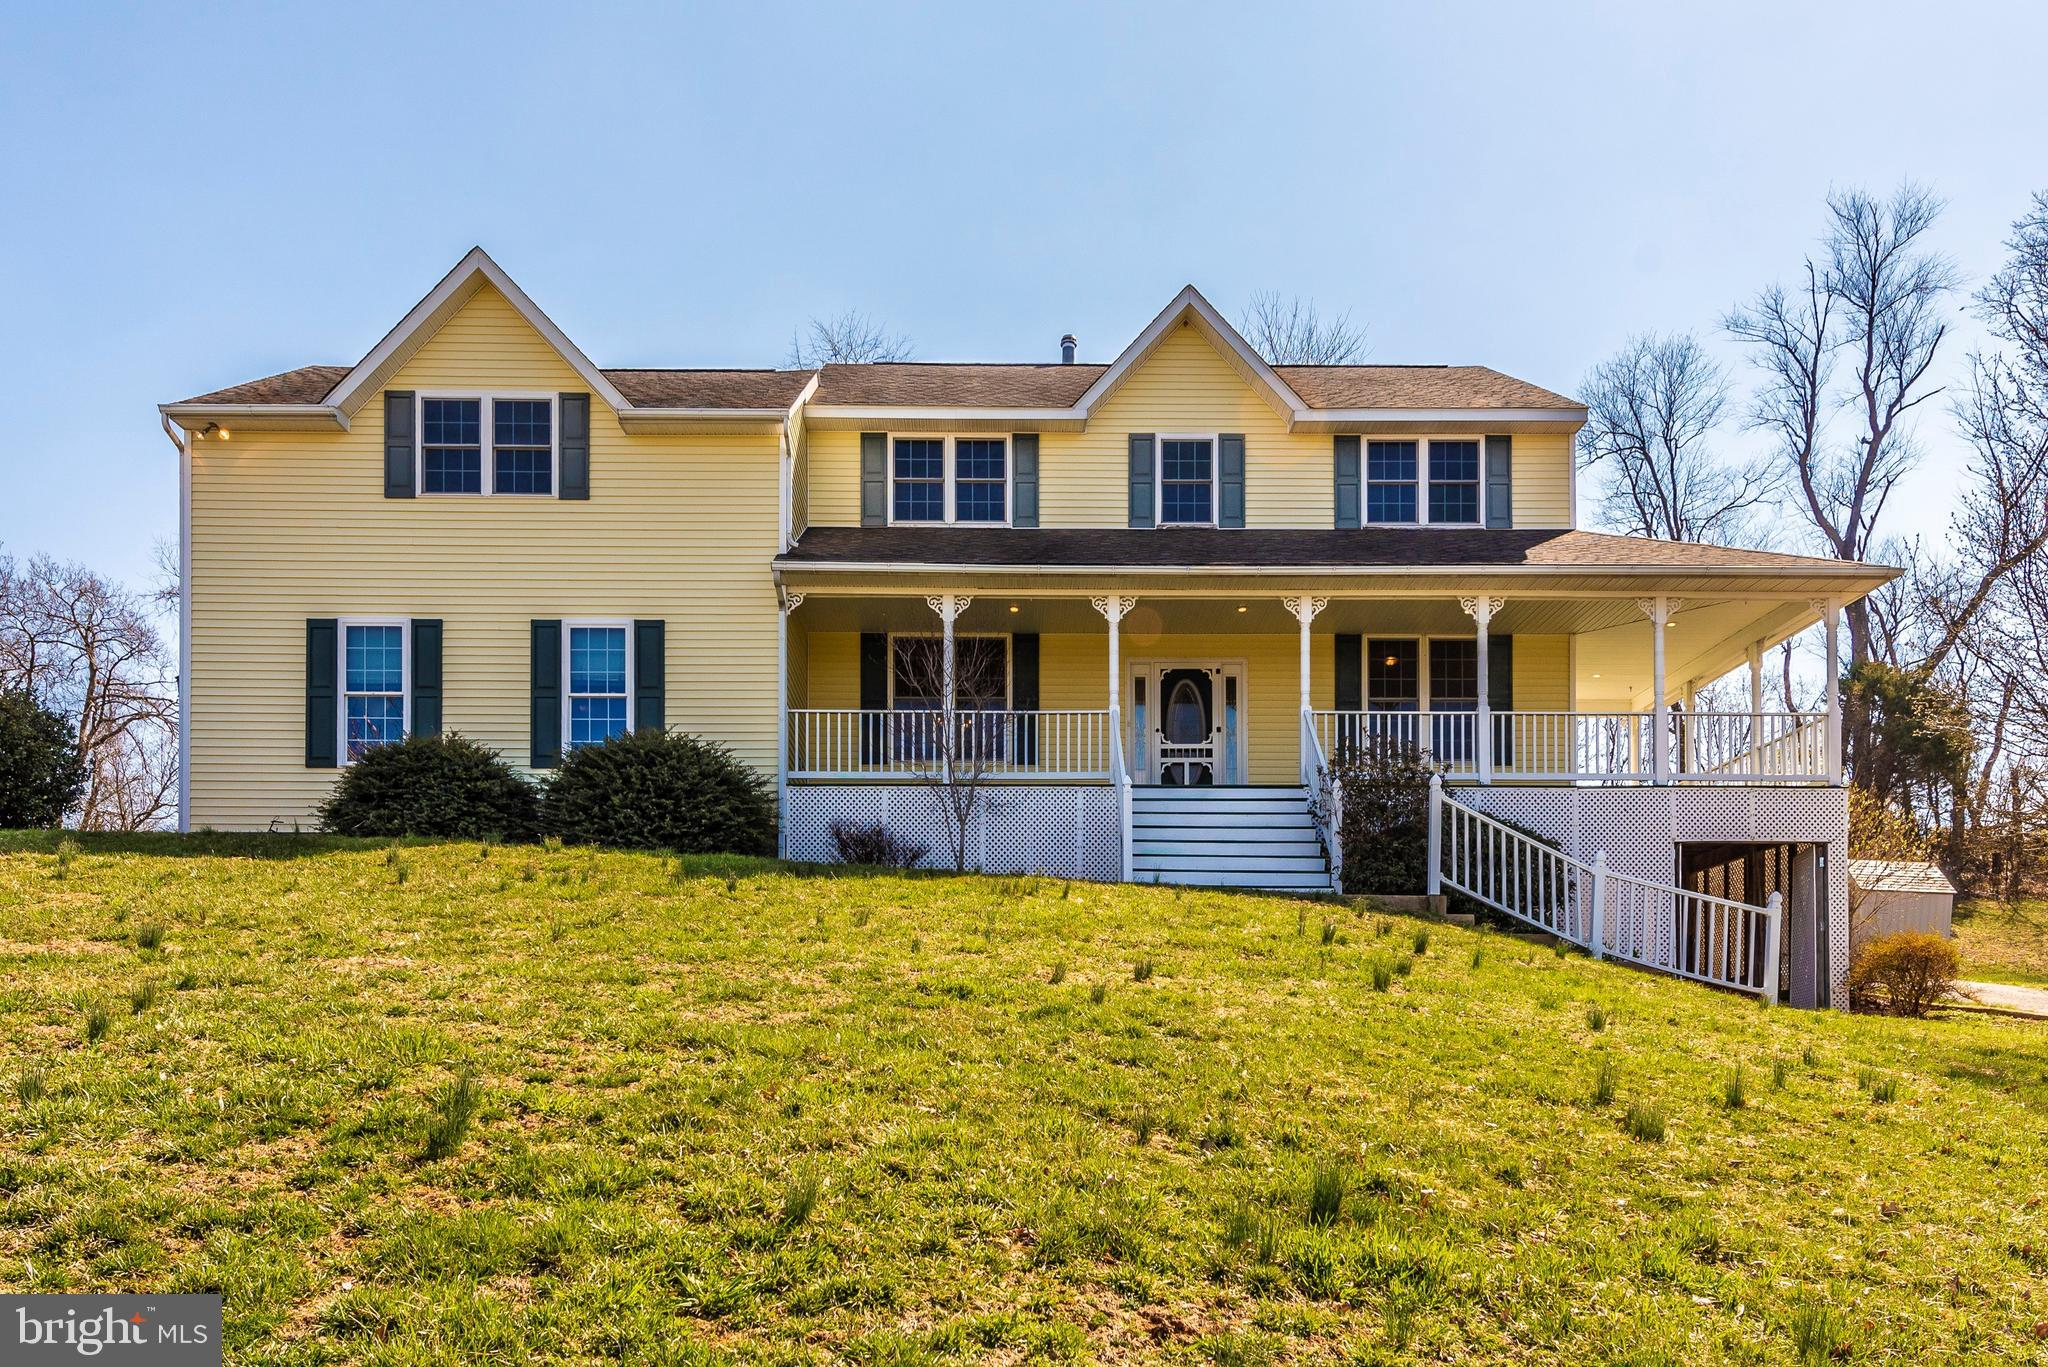 5705 RENO COURT, BOONSBORO, MD 21713